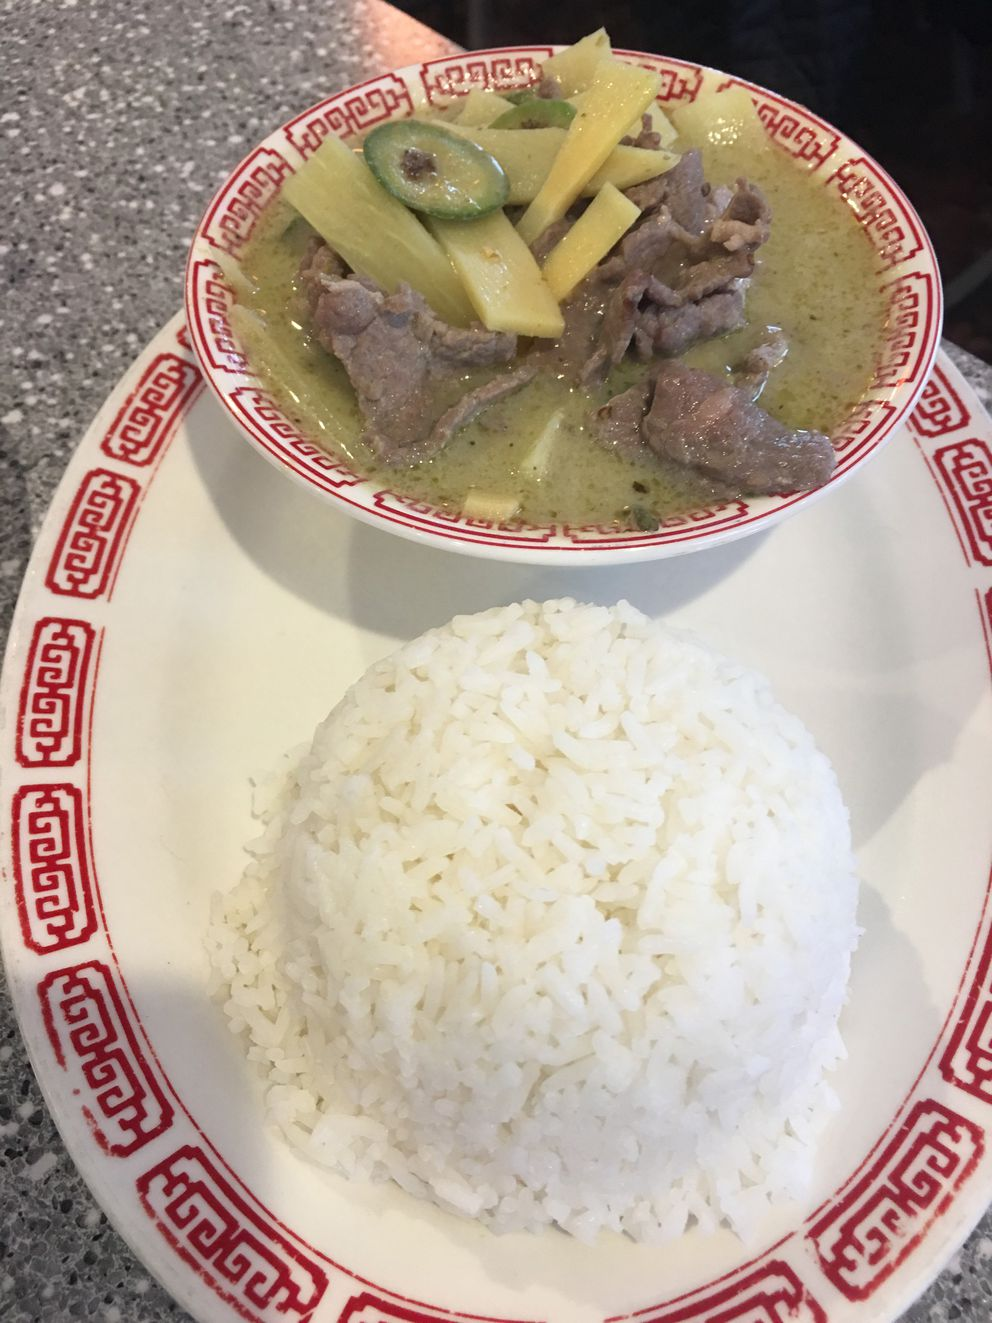 Pho Lena's $9.95 lunch special includes a choice of one of 13 entrees, plus a cup of soup and choice of an egg roll, fresh roll or salad. (Photo by Mara Severin)